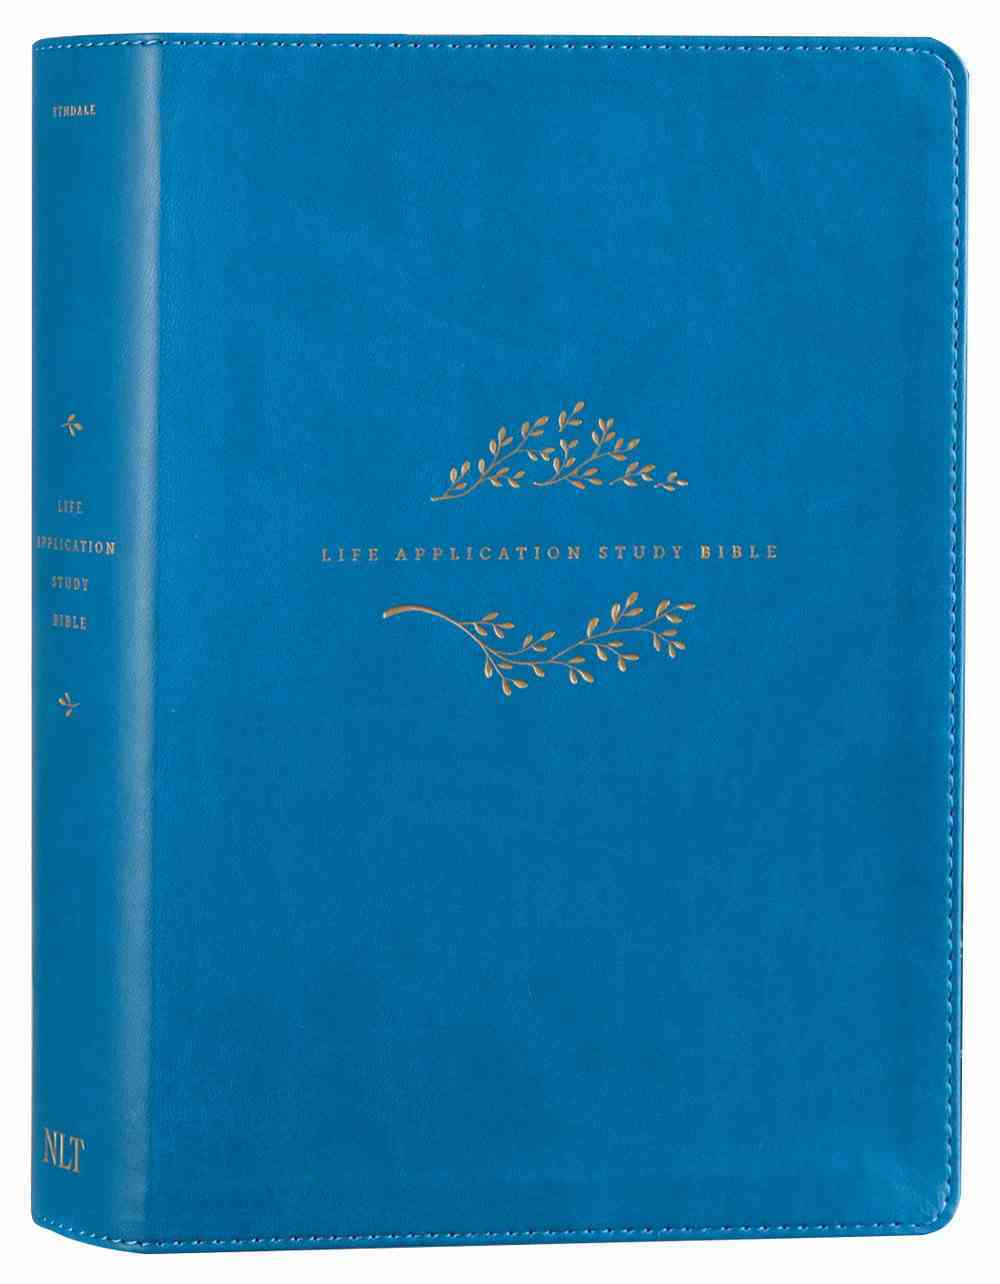 NLT Life Application Study Bible Teal Blue (Red Letter Edition) (3rd Edition) Imitation Leather